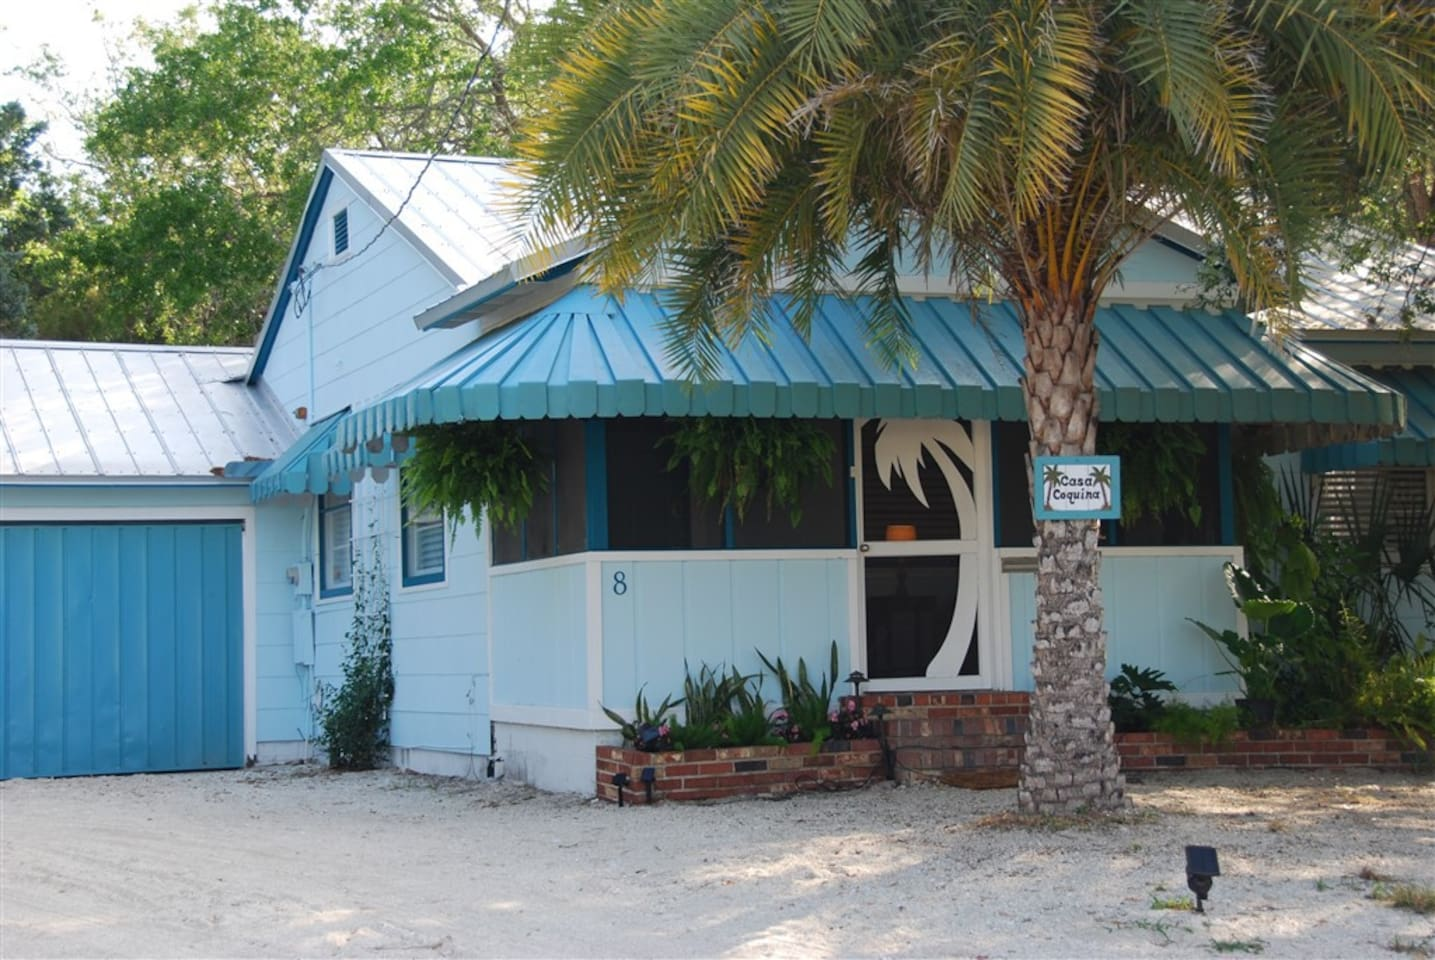 Classic Old Florida home, completely updated in walking distance to the old city, St Augustine Amphitheater (concerts), Anastasia Island shops, restaurants and bars.  Five minutes to beach. Room to park a small boat in the yard.